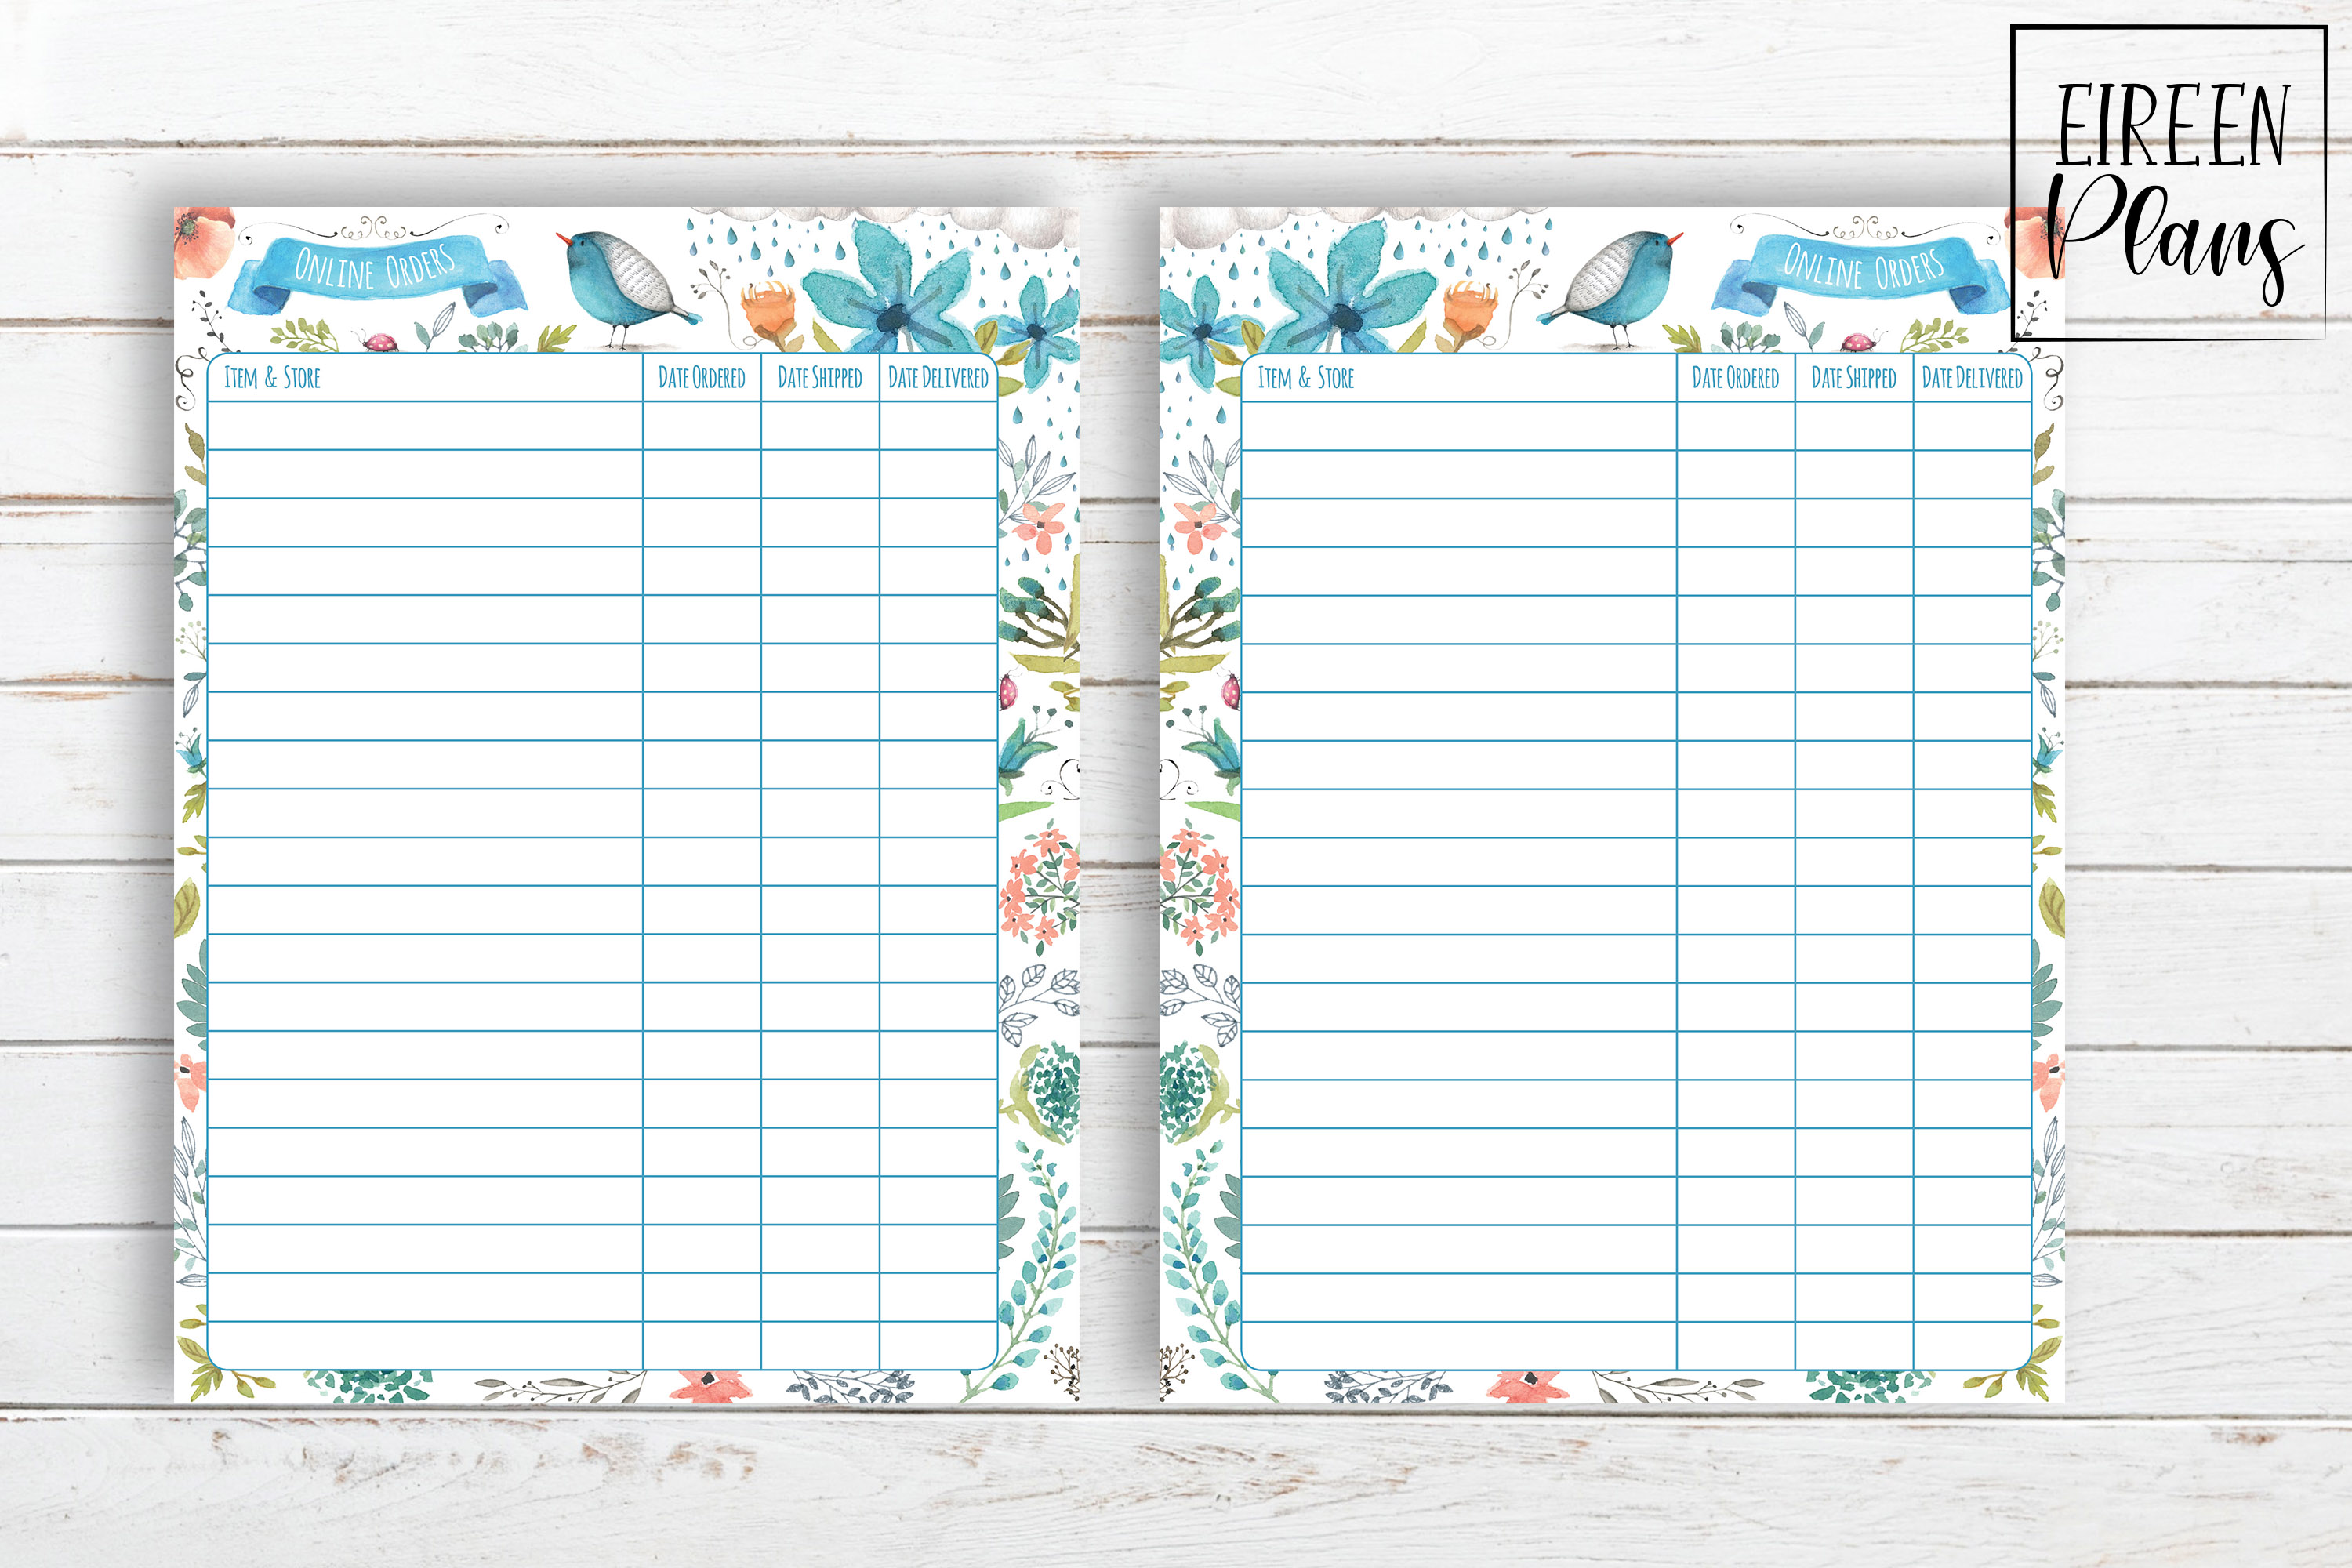 Online Orders Tracker Printable for Classic Happy Planner example image 2